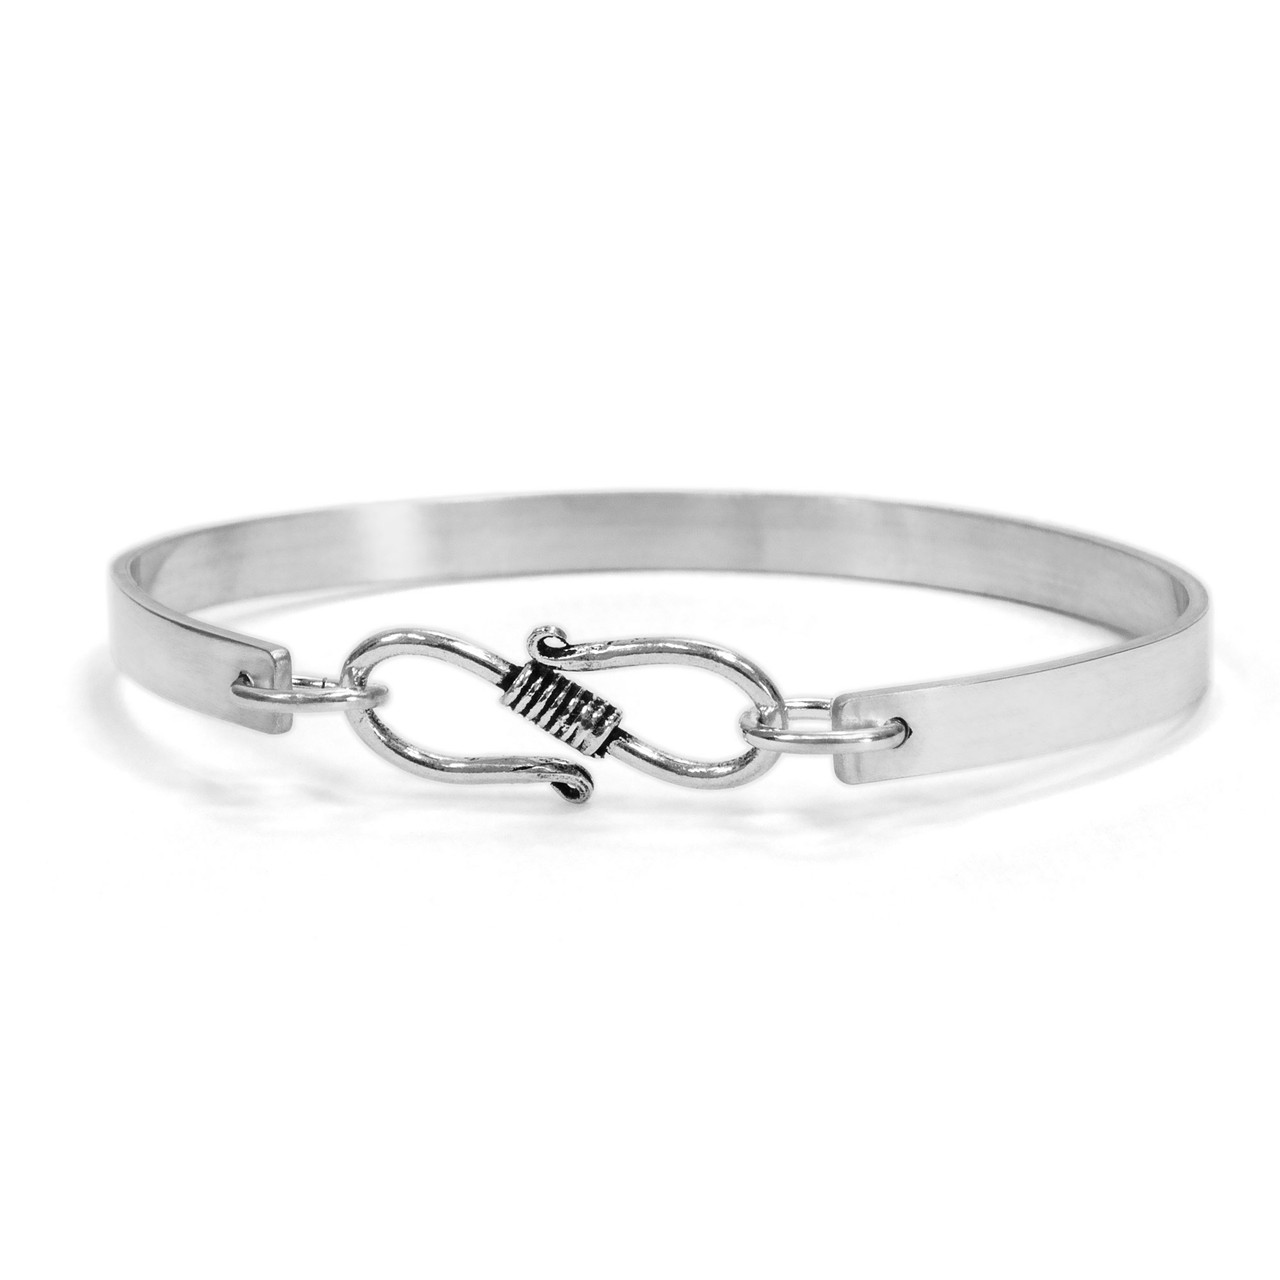 Sterling silver handwriting cuff bracelet with clasp, shown from the back on white